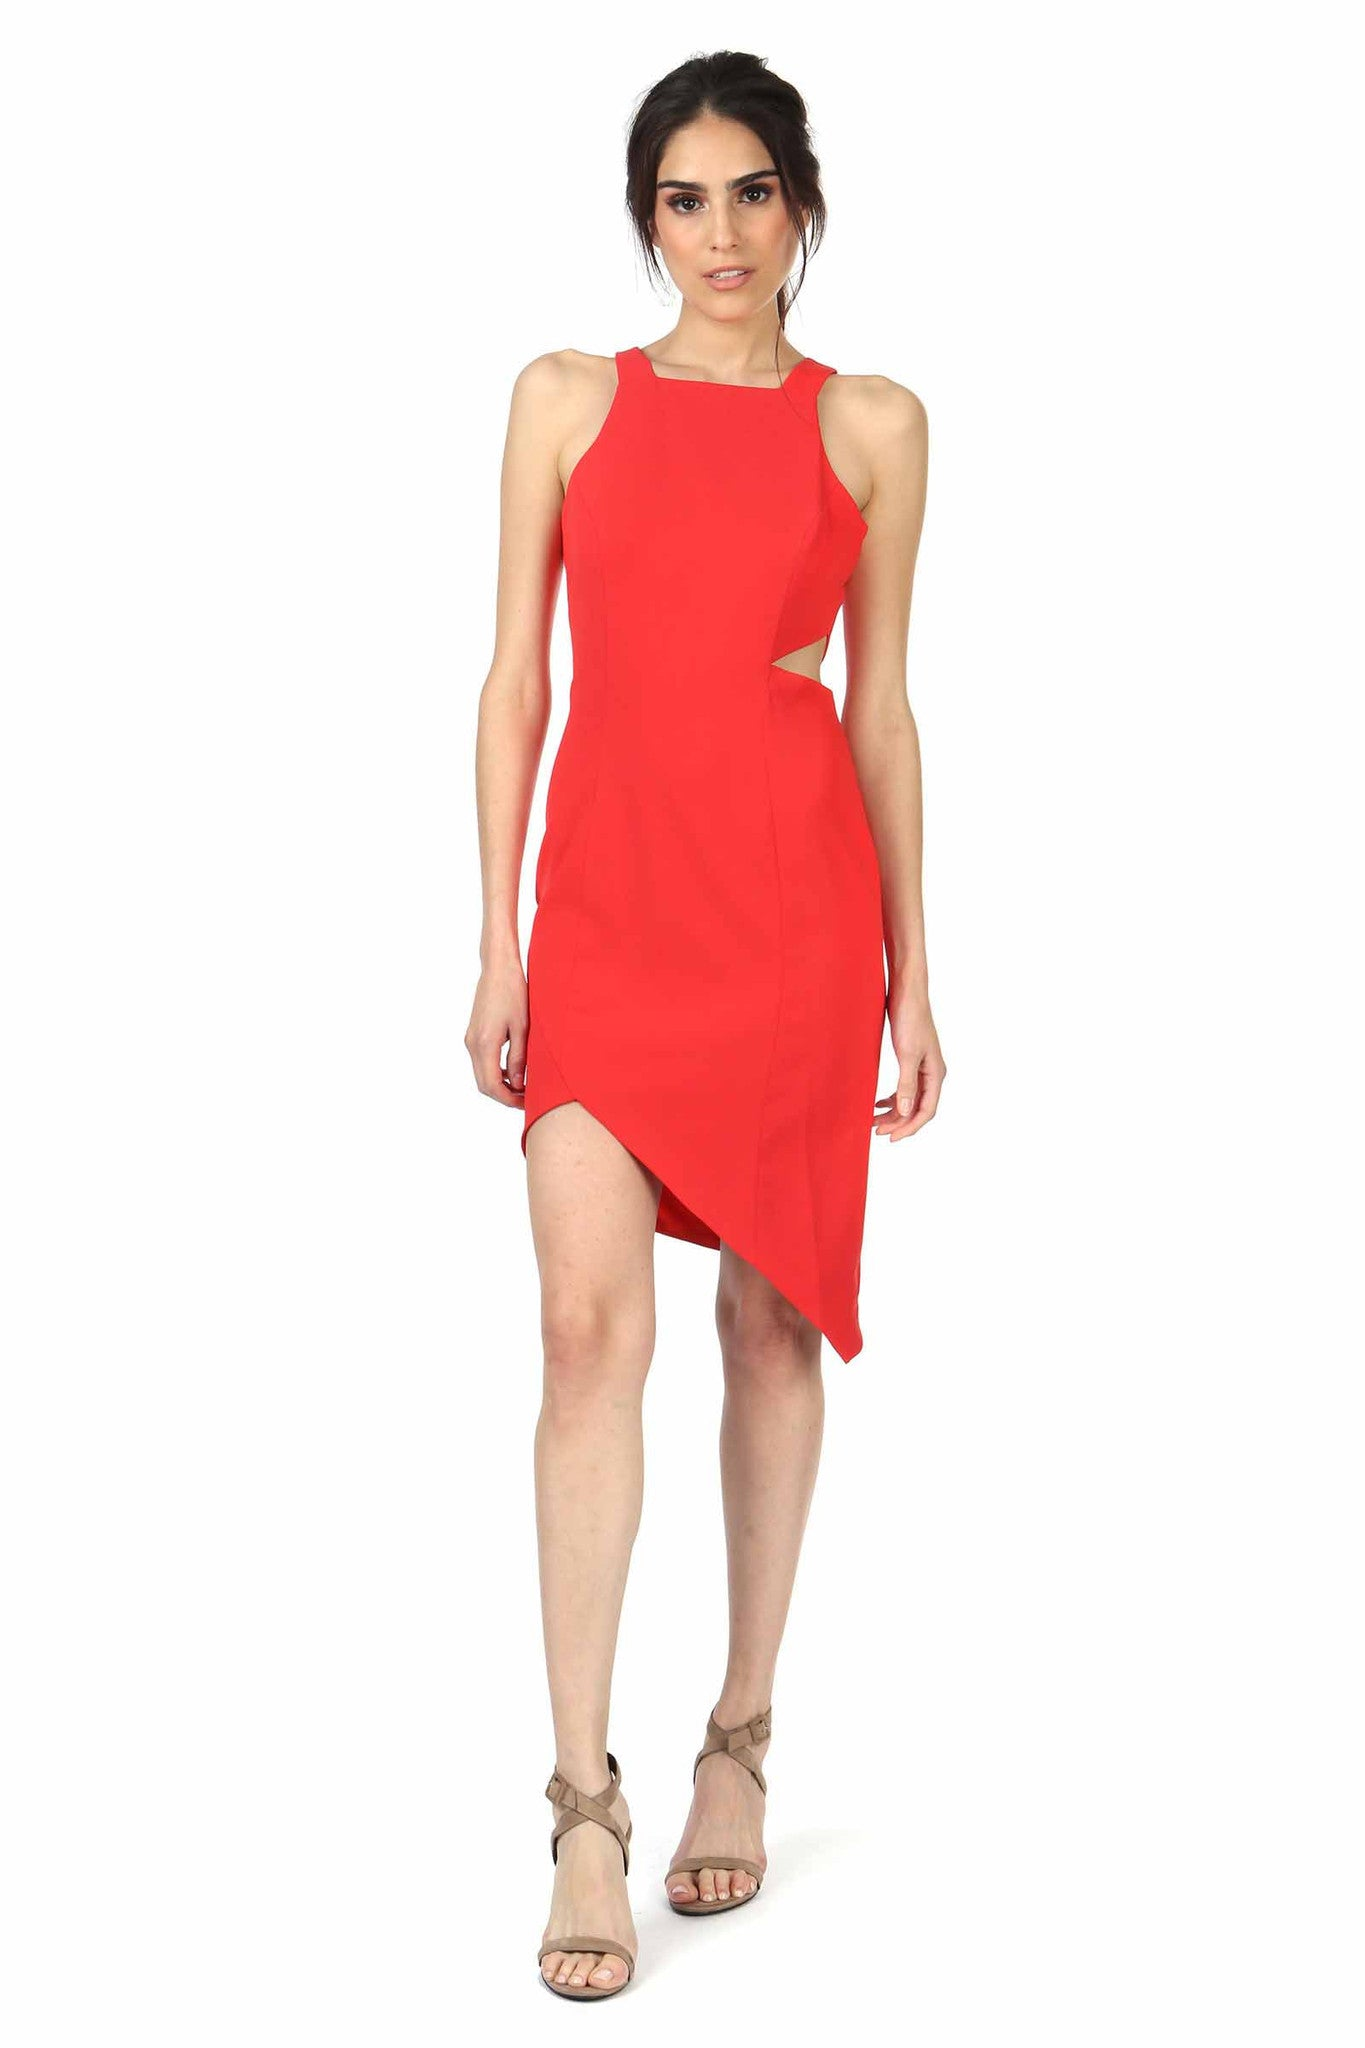 AIKENS SIDE CUT OUT CORAL RED DRESS